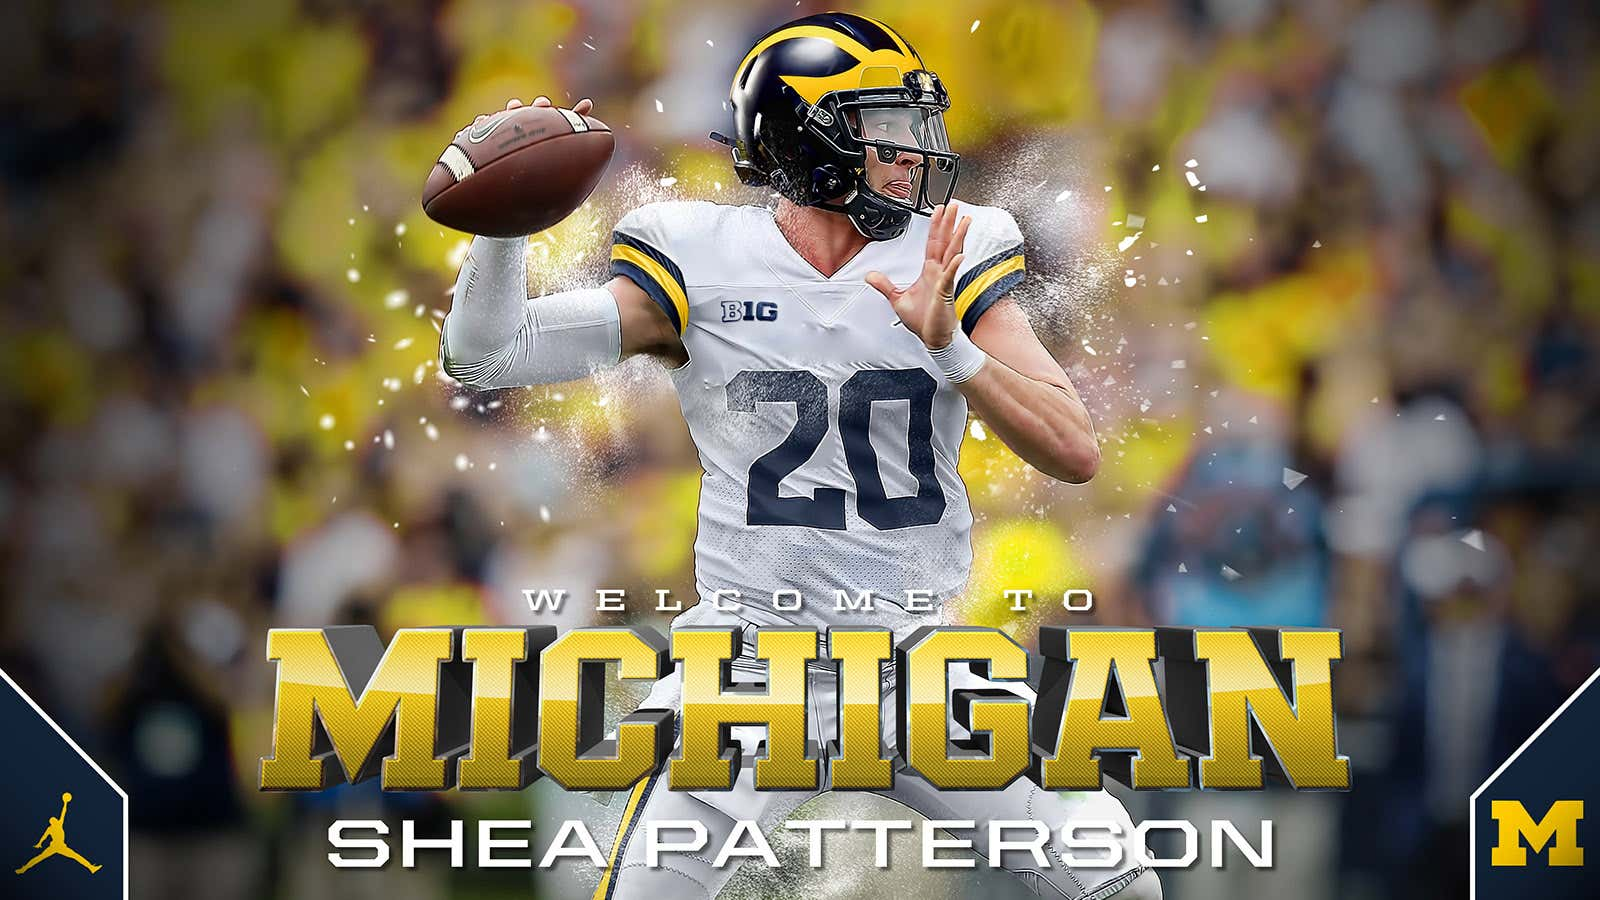 Welcome_Shea_Patterson_16x9